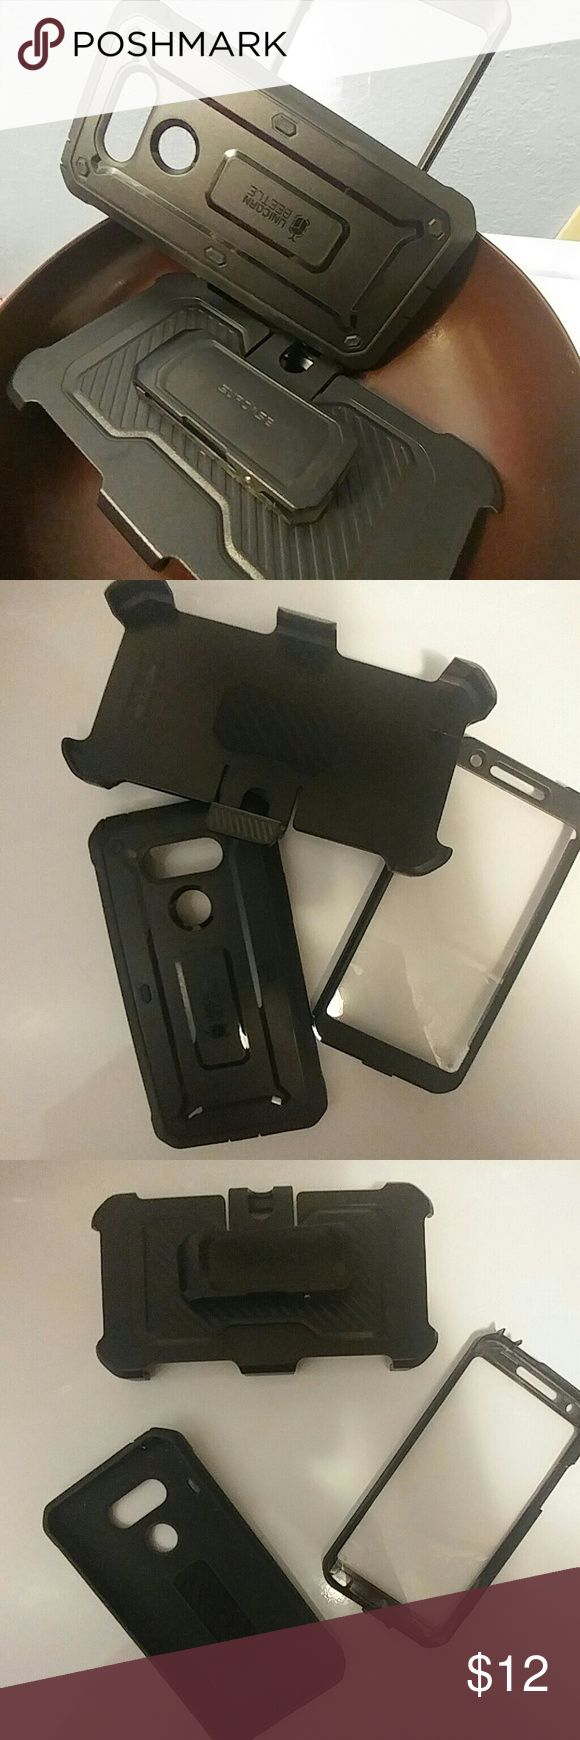 🐝Cell phone case/clip Black Unicorn Beetle (supcase) designed by Brillotech Inc. for LG G5. Lightly used. Has an actual phone case then a seperate clip case to attatch your phone and easily clip it in your purse for an eaay find😃Great condition! unicorn beetle sup case Accessories Phone Cases